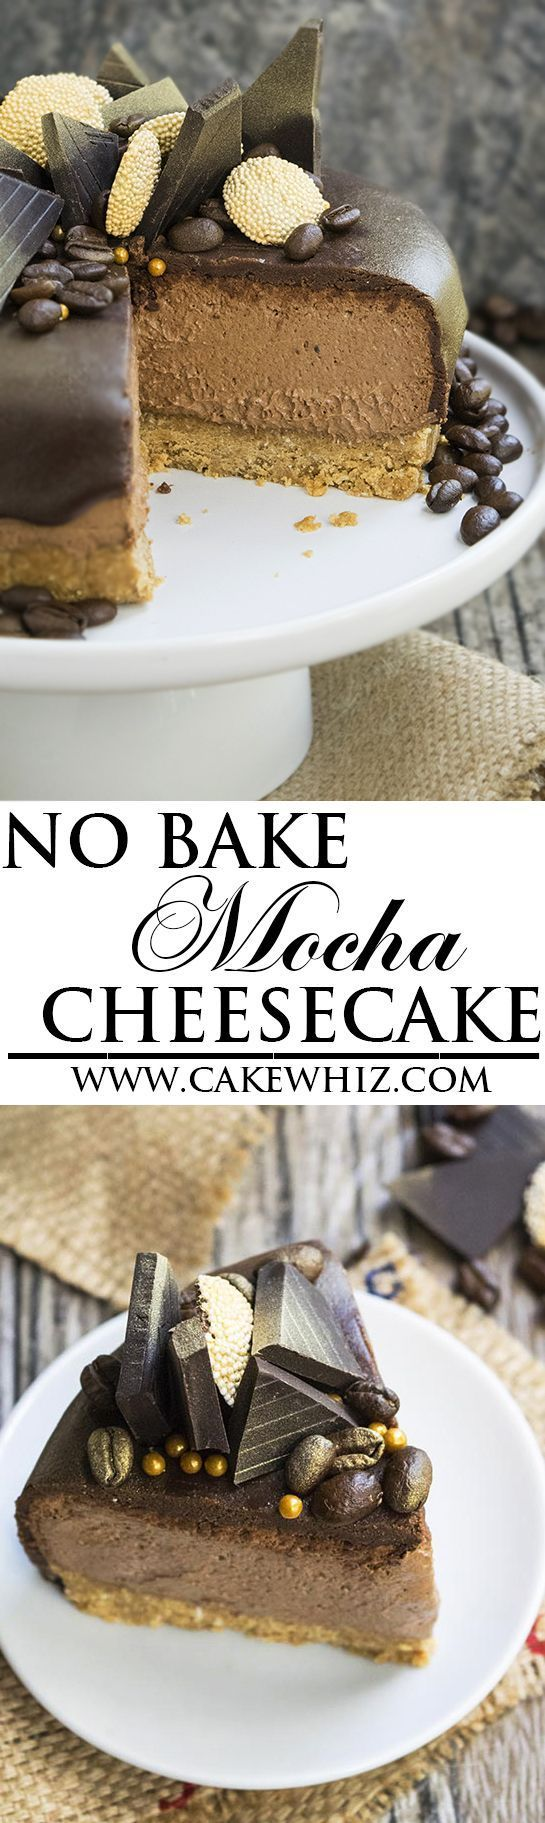 This easy NO BAKE MOCHA CHEESECAKE recipe makes the perfect dessert for Summer parties. It's packed with rich chocolate and coffee/espresso flavors.